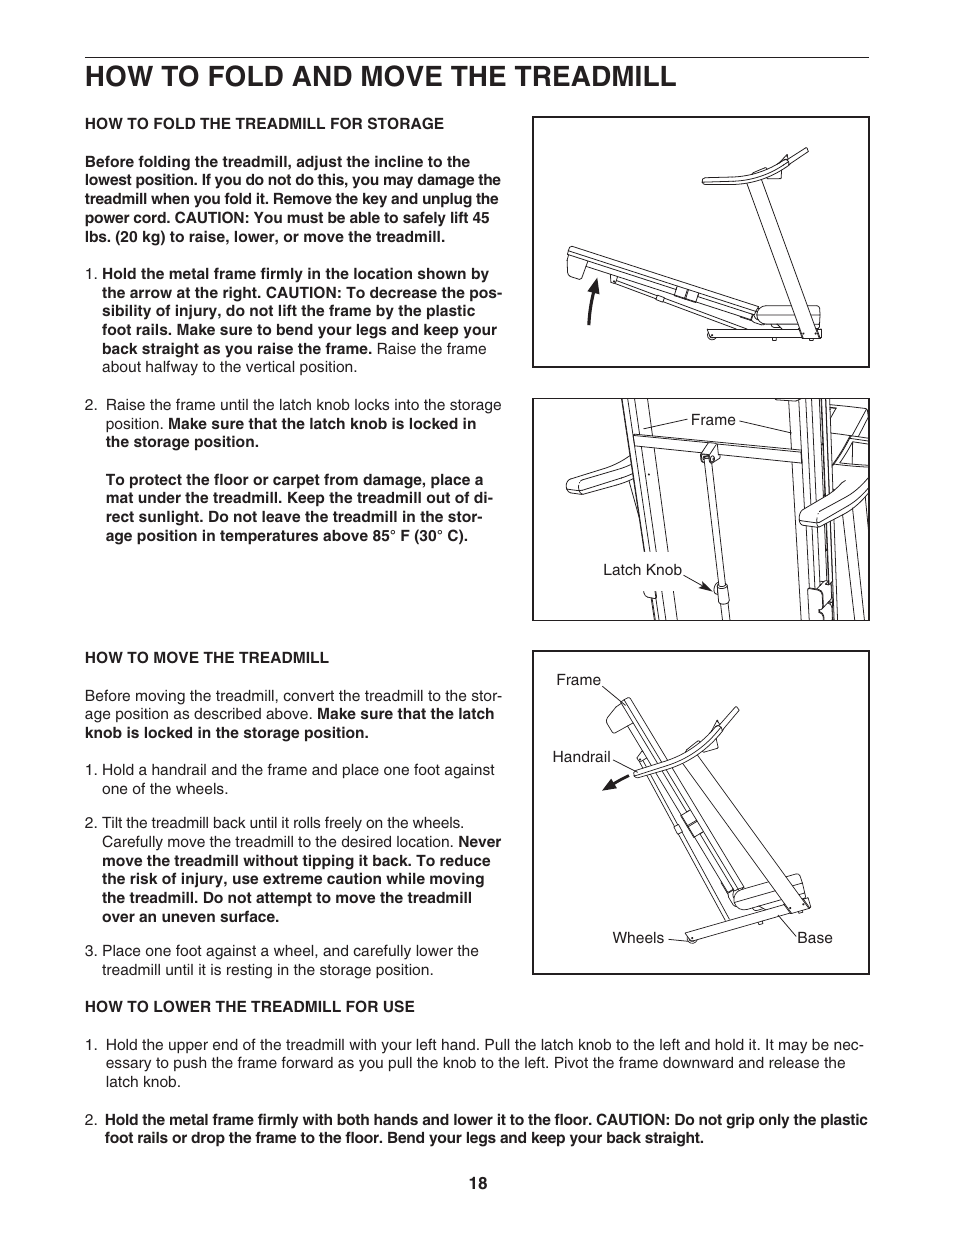 Proform home gyms system 2 (no. 831. 159213) owner's manual.